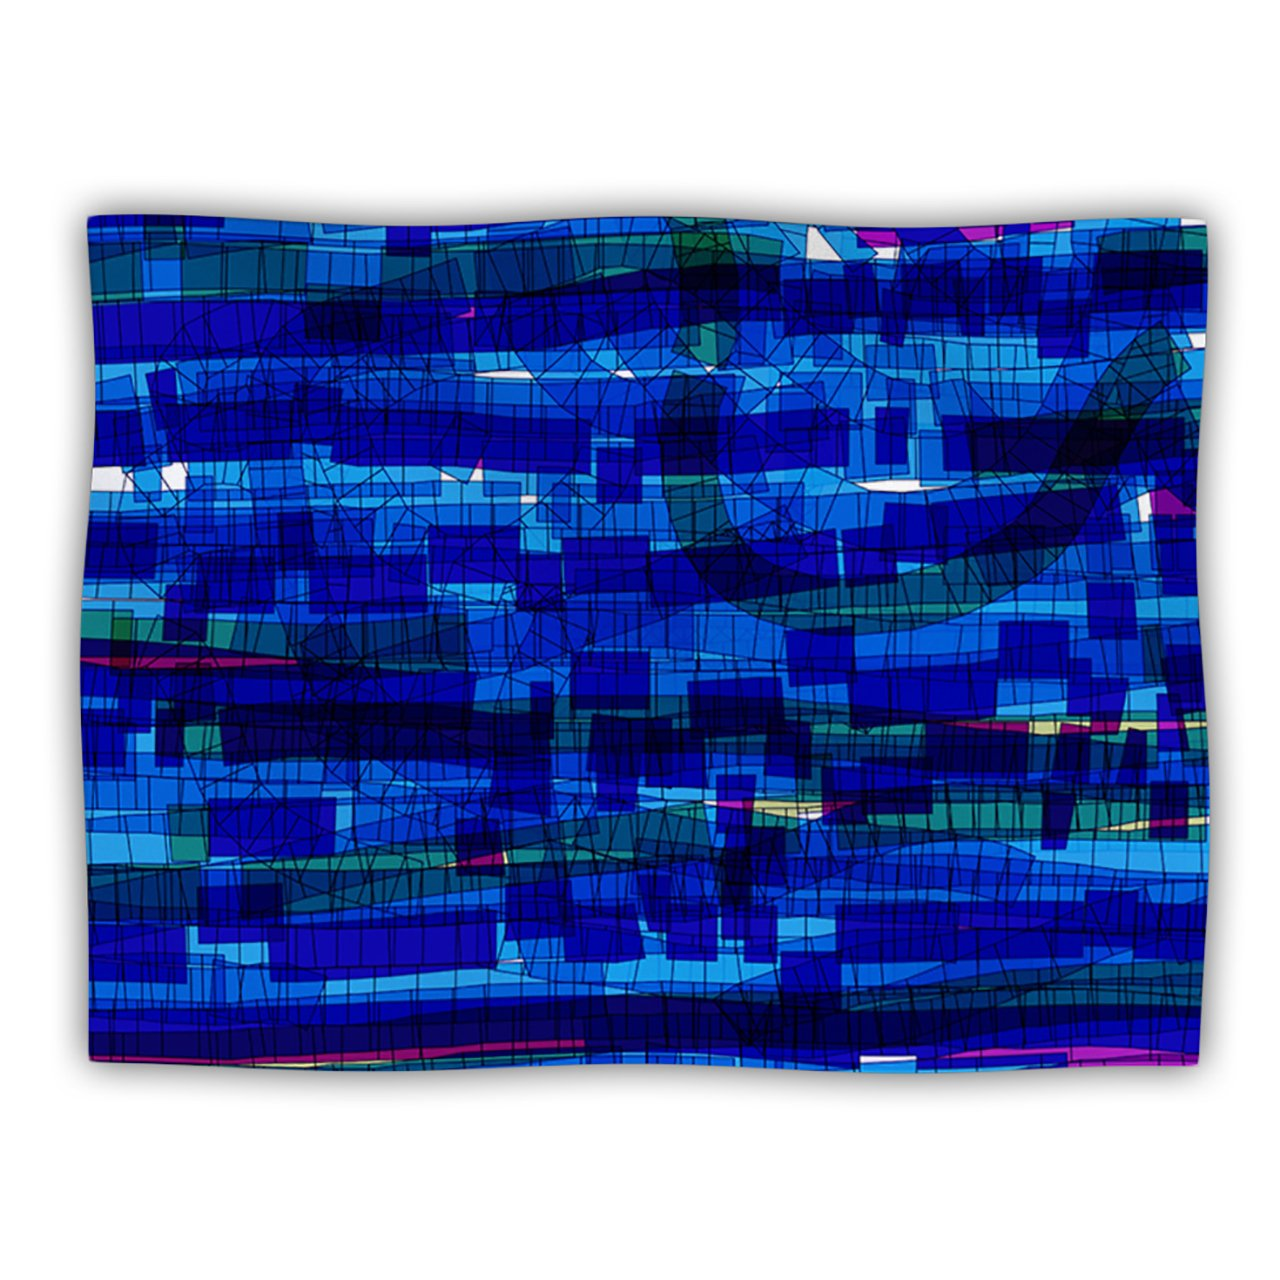 Kess InHouse Frederic Levy-Hadida Squares Traffic bluee  Dog Blanket, 60 by 50-Inch